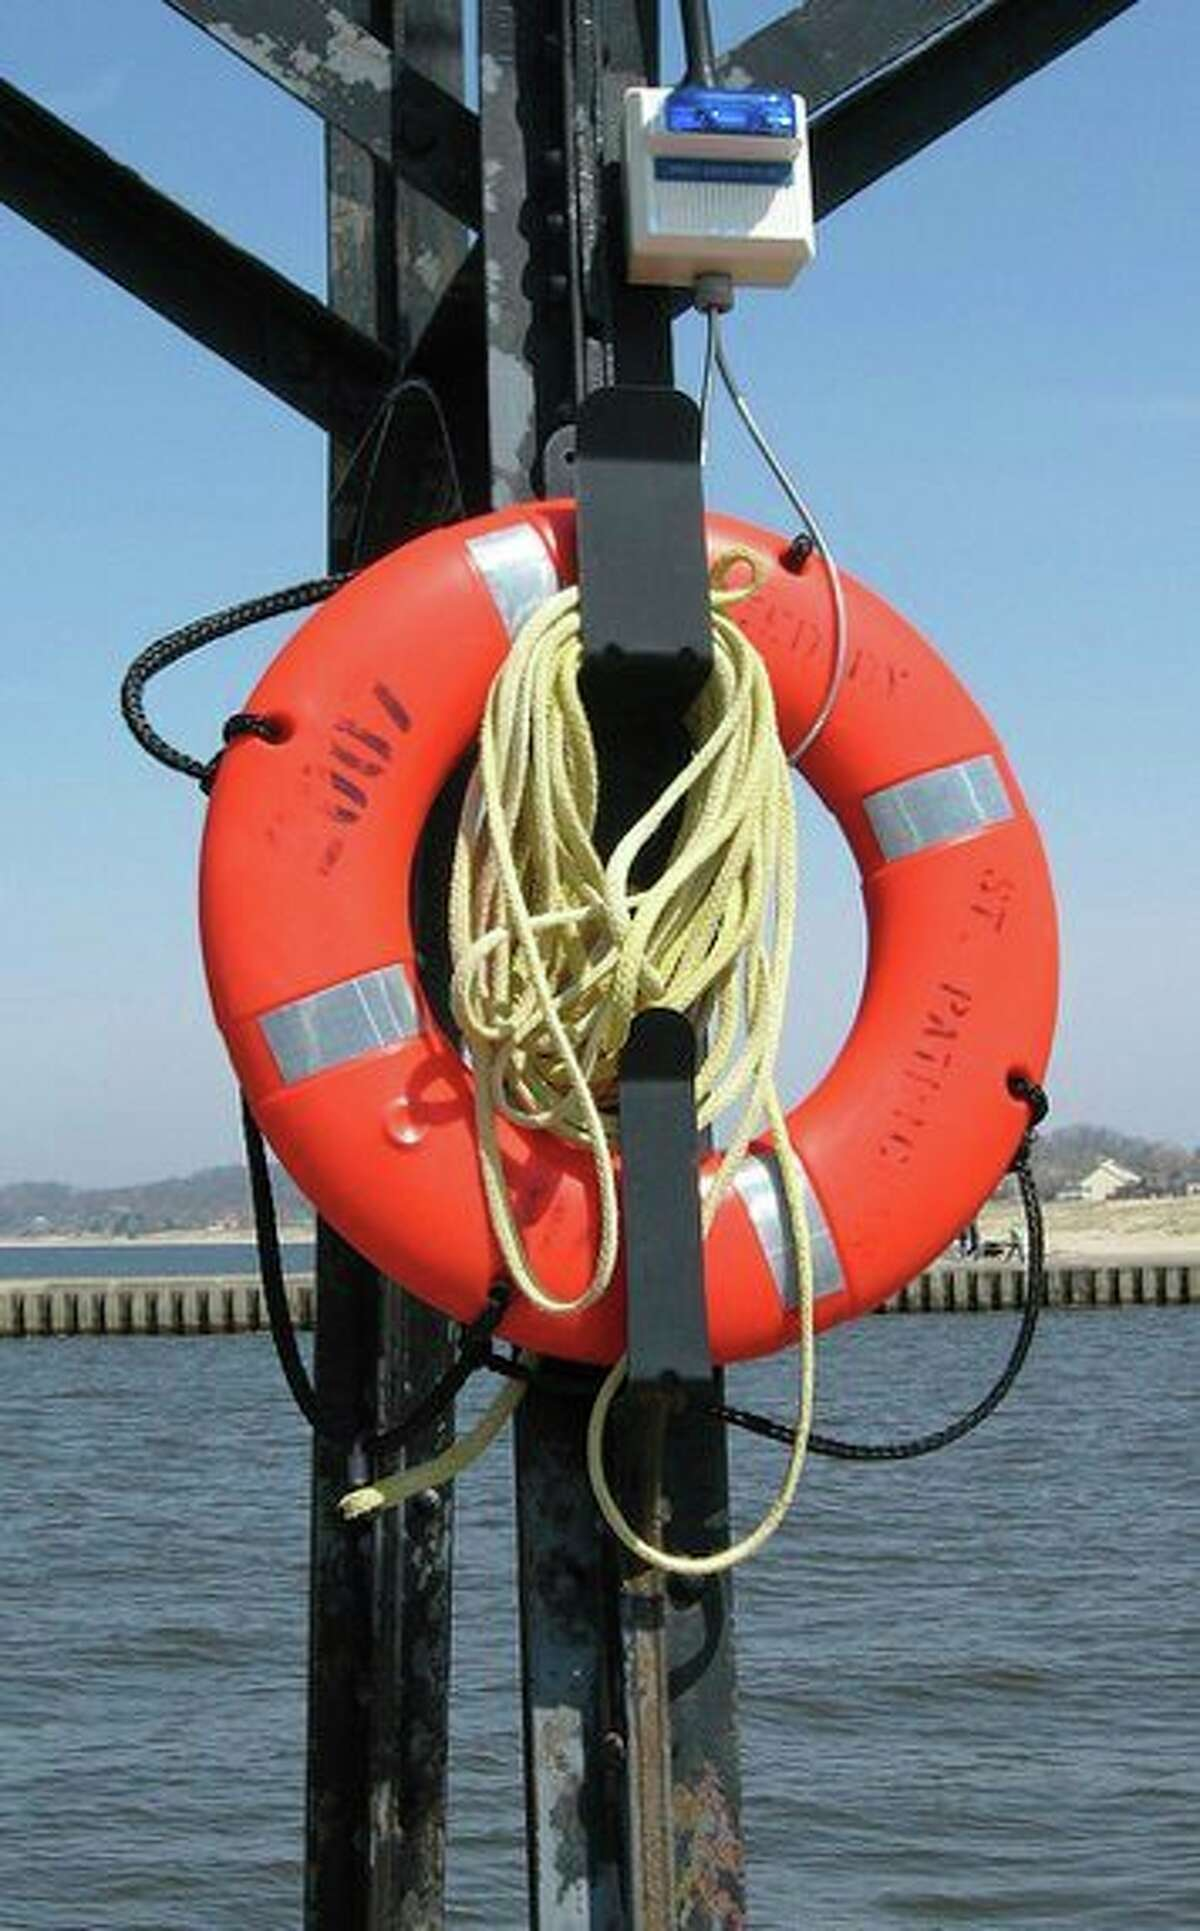 Life-saving equipment is one tactic to prevent drownings on the Great Lakes. (Courtesy photo/Michigan Sea Grant)